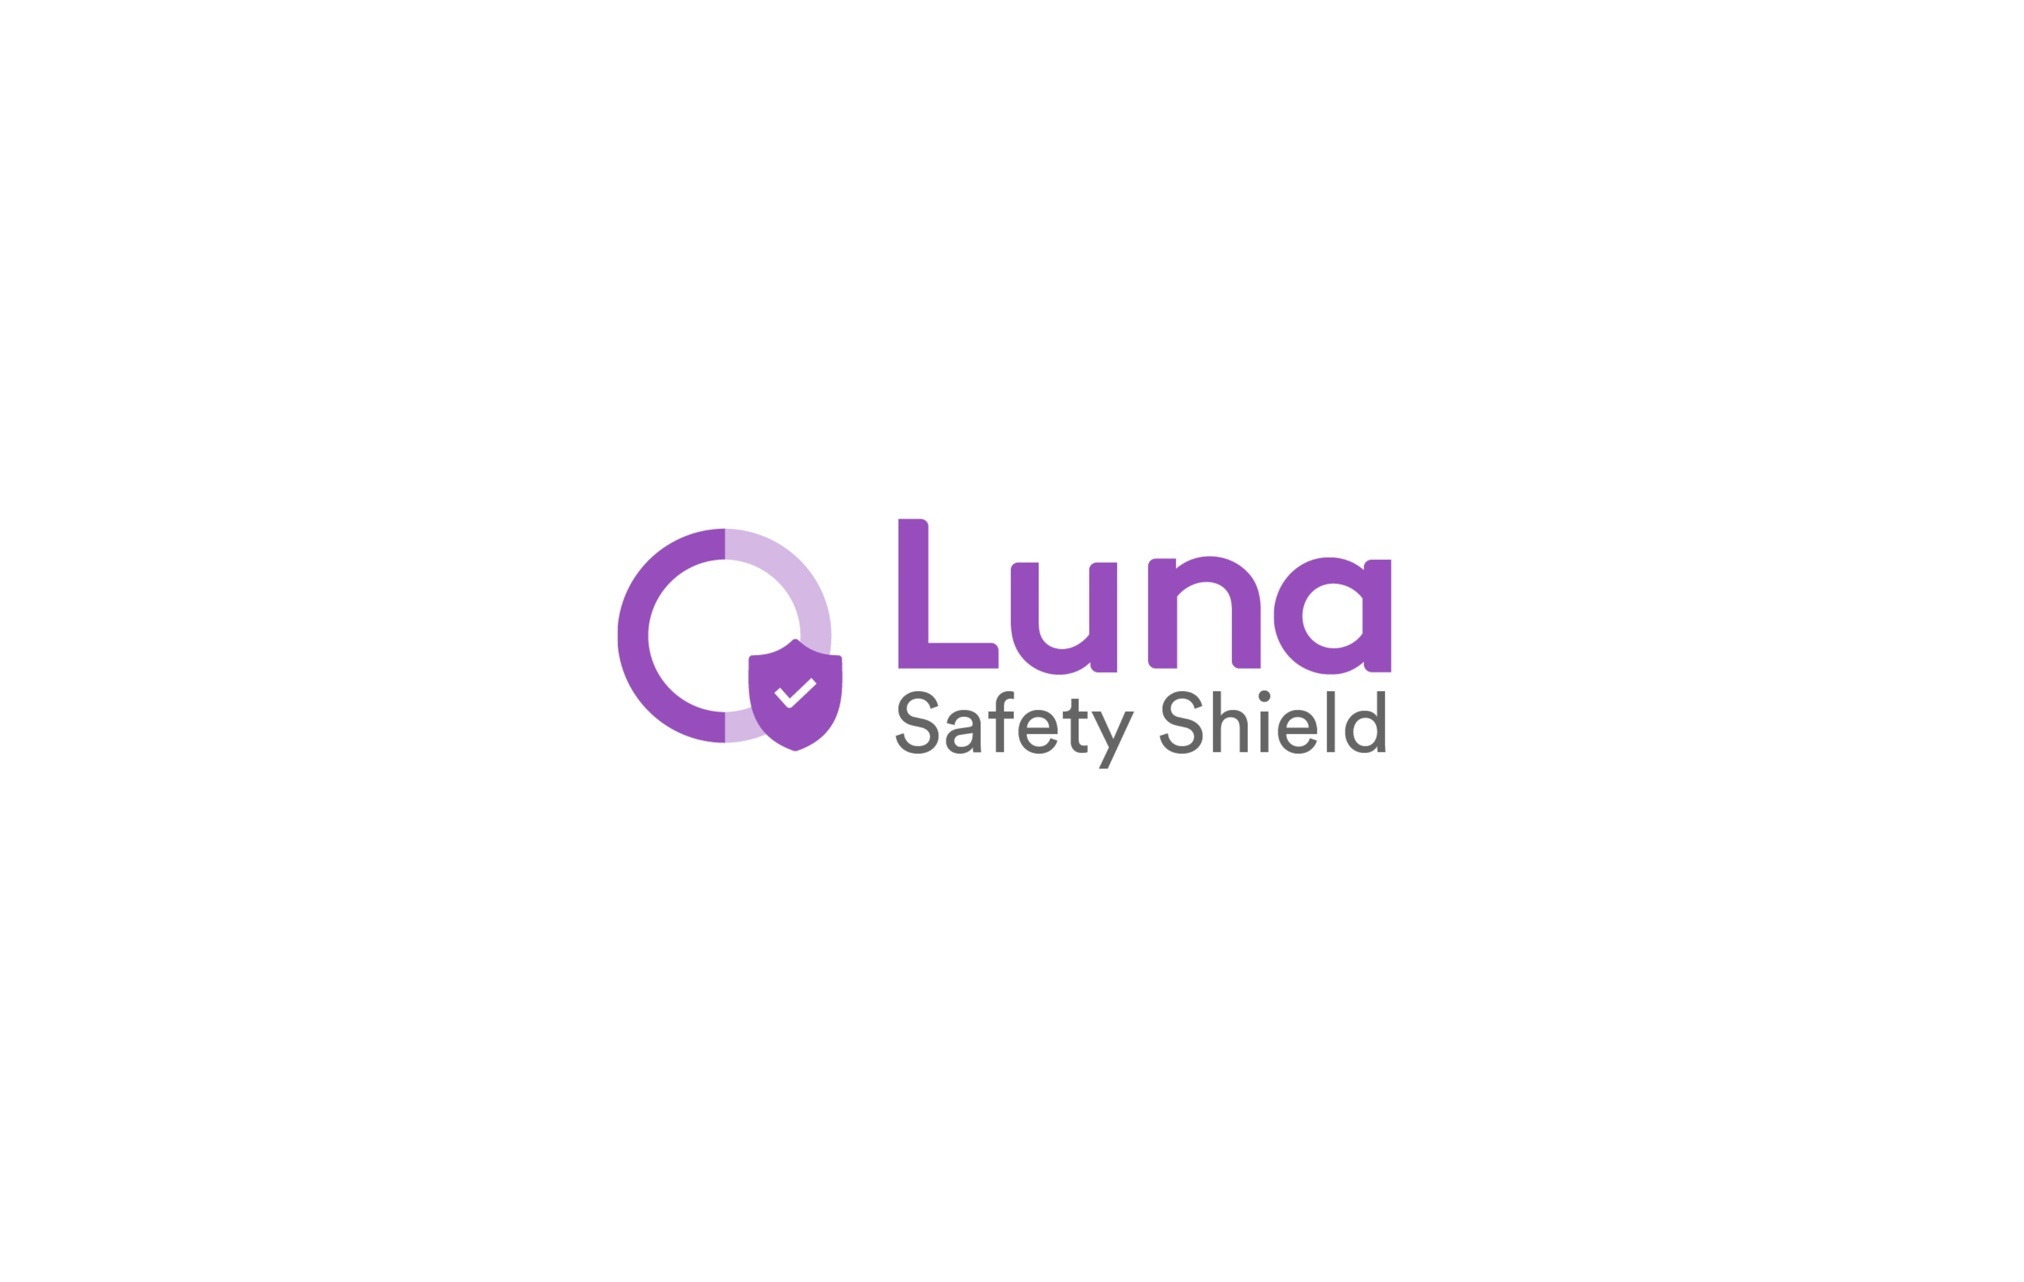 The Luna Safety Shield